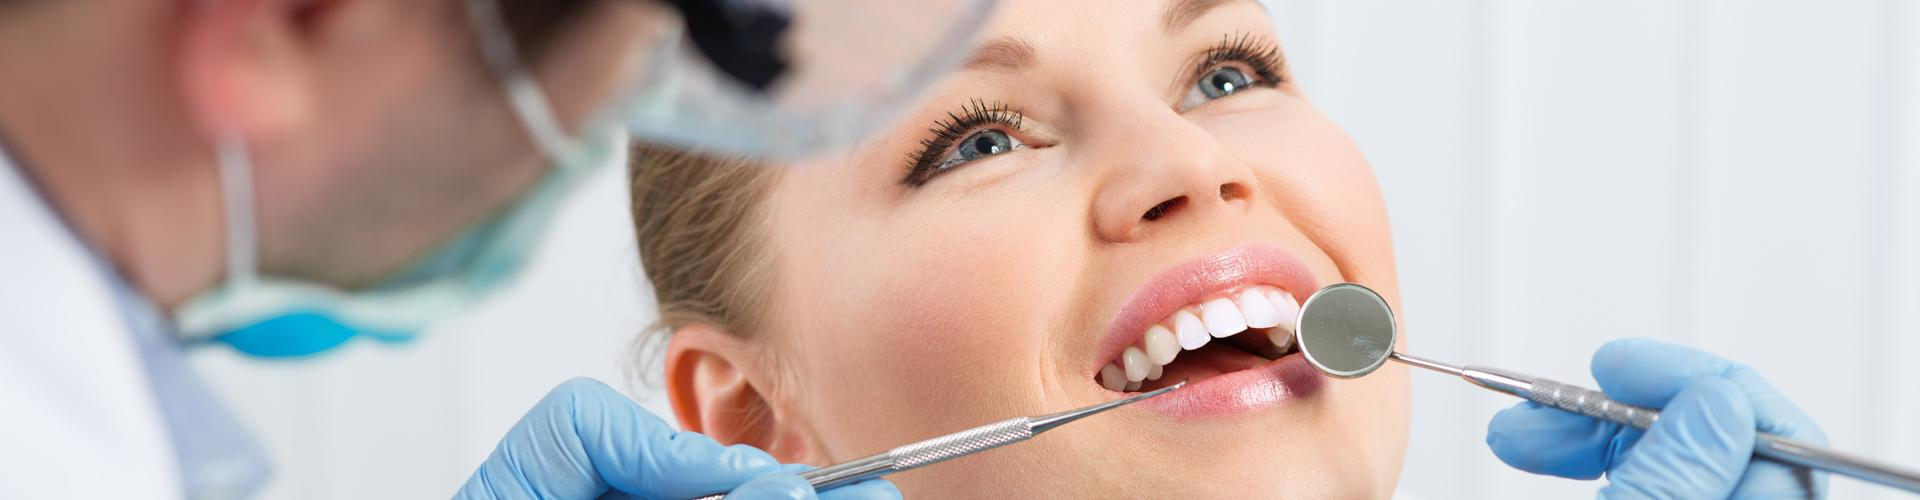 Tooth Extraction Charlotte, NC | Oral Surgery Associates of